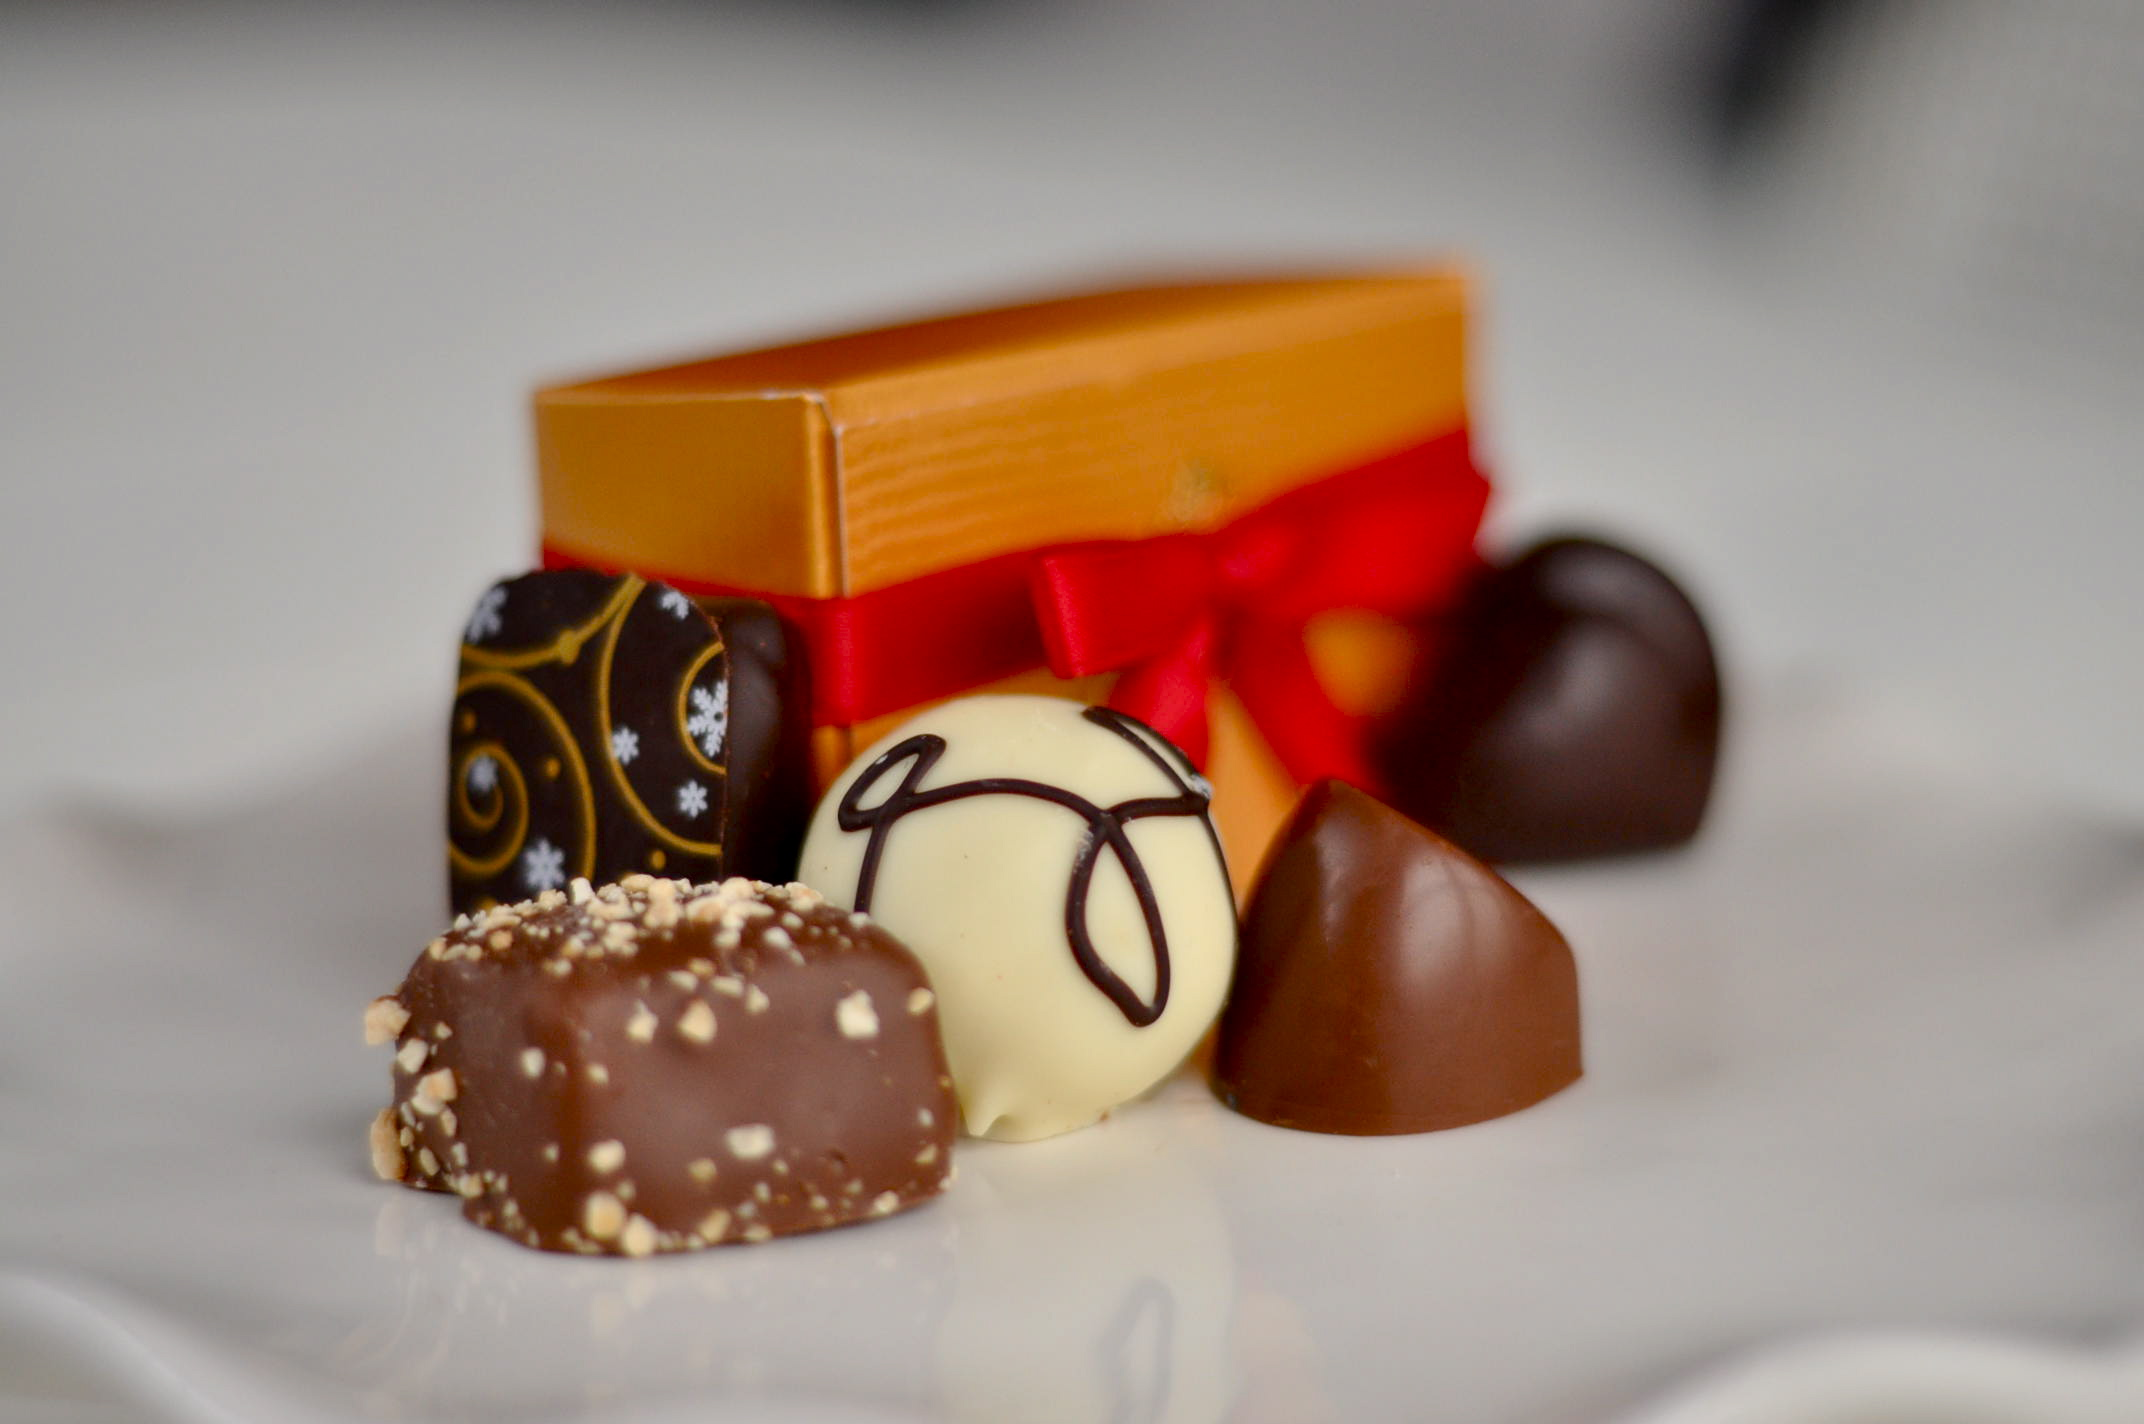 Godiva Chocolate Rewards – DessertedPlanet.com